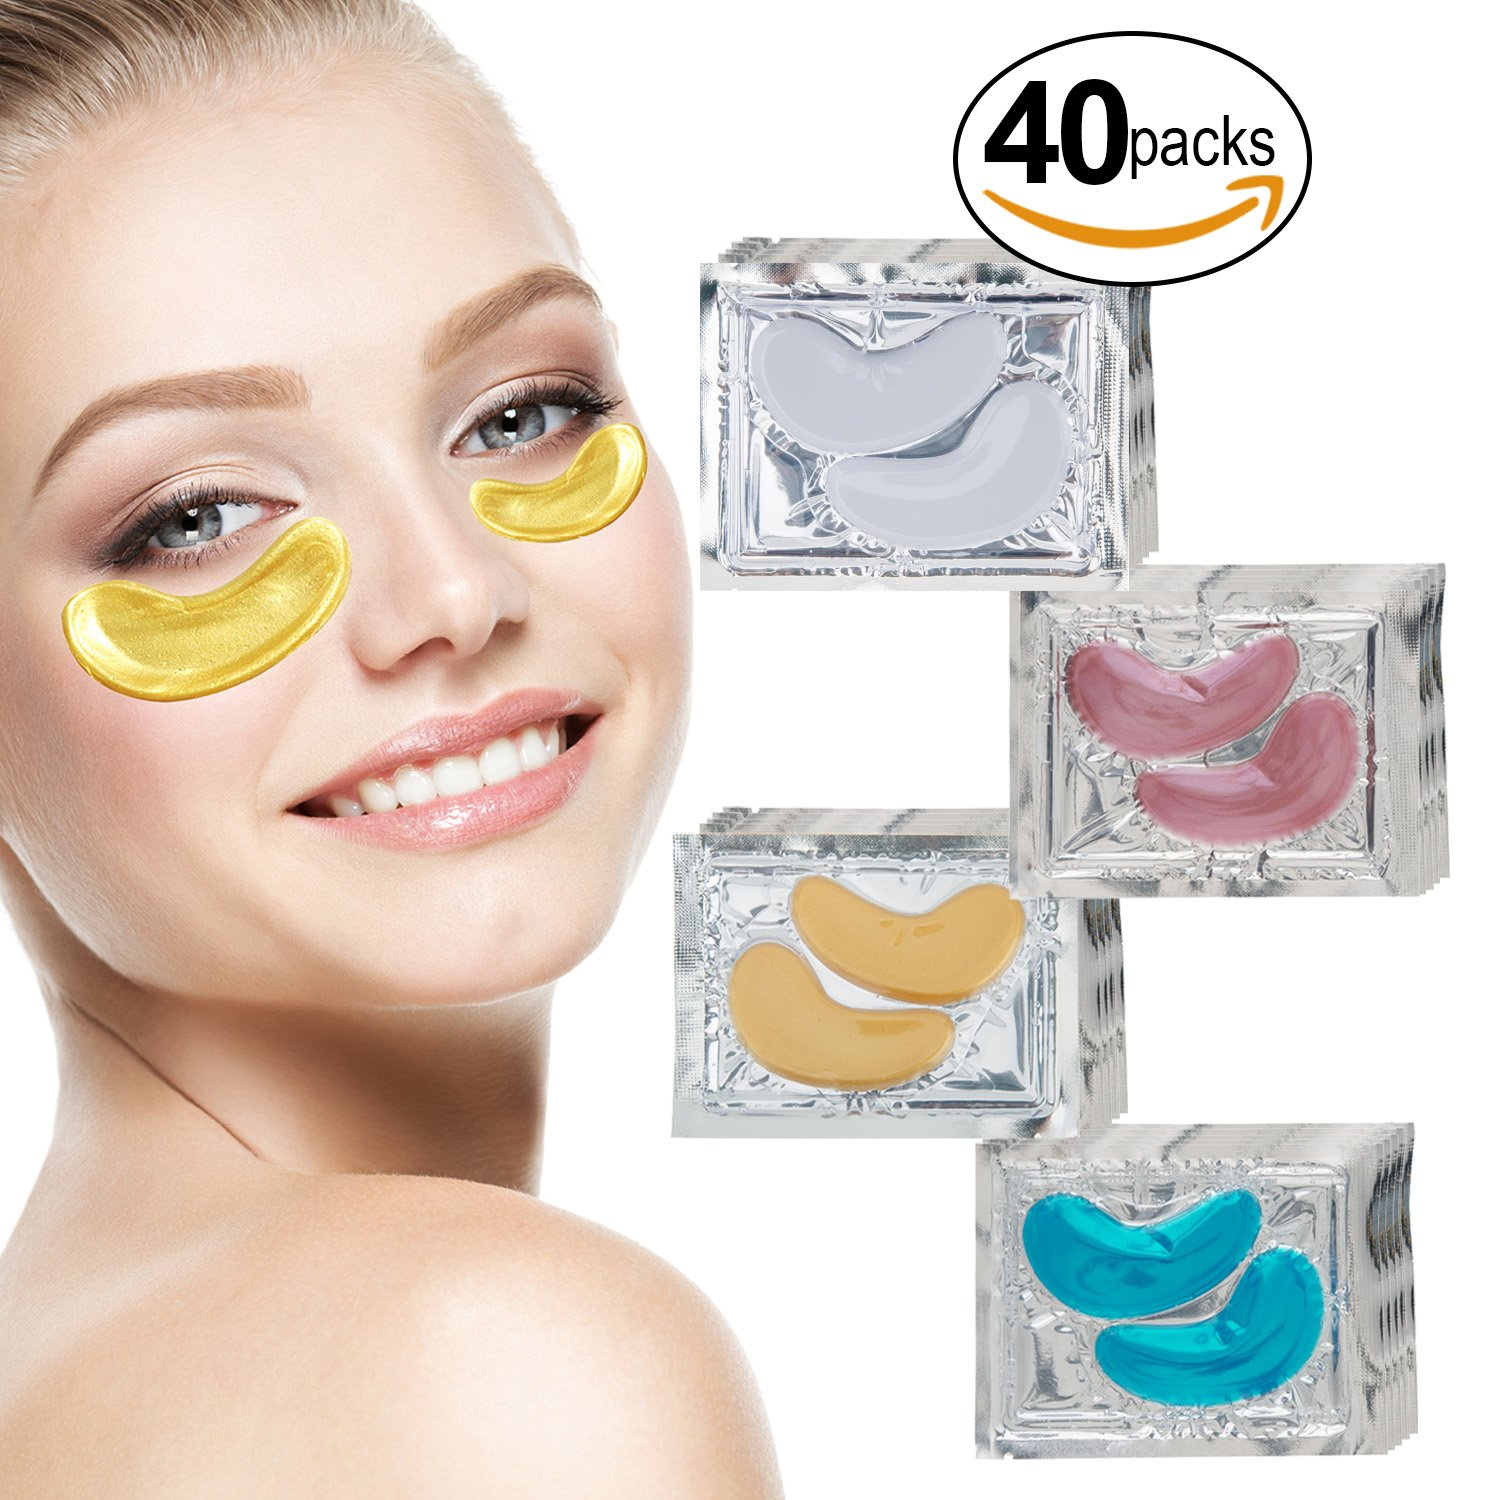 VAGA Collagen Eye Masks Anti Aging Facial Treatments Set of 40 Pairs with 24K Gold, Milk White, Blue Algae and Red Wine Gel Crystal Pads. For Hydration, Wrinkles, Dark Circles and Puffiness Removal